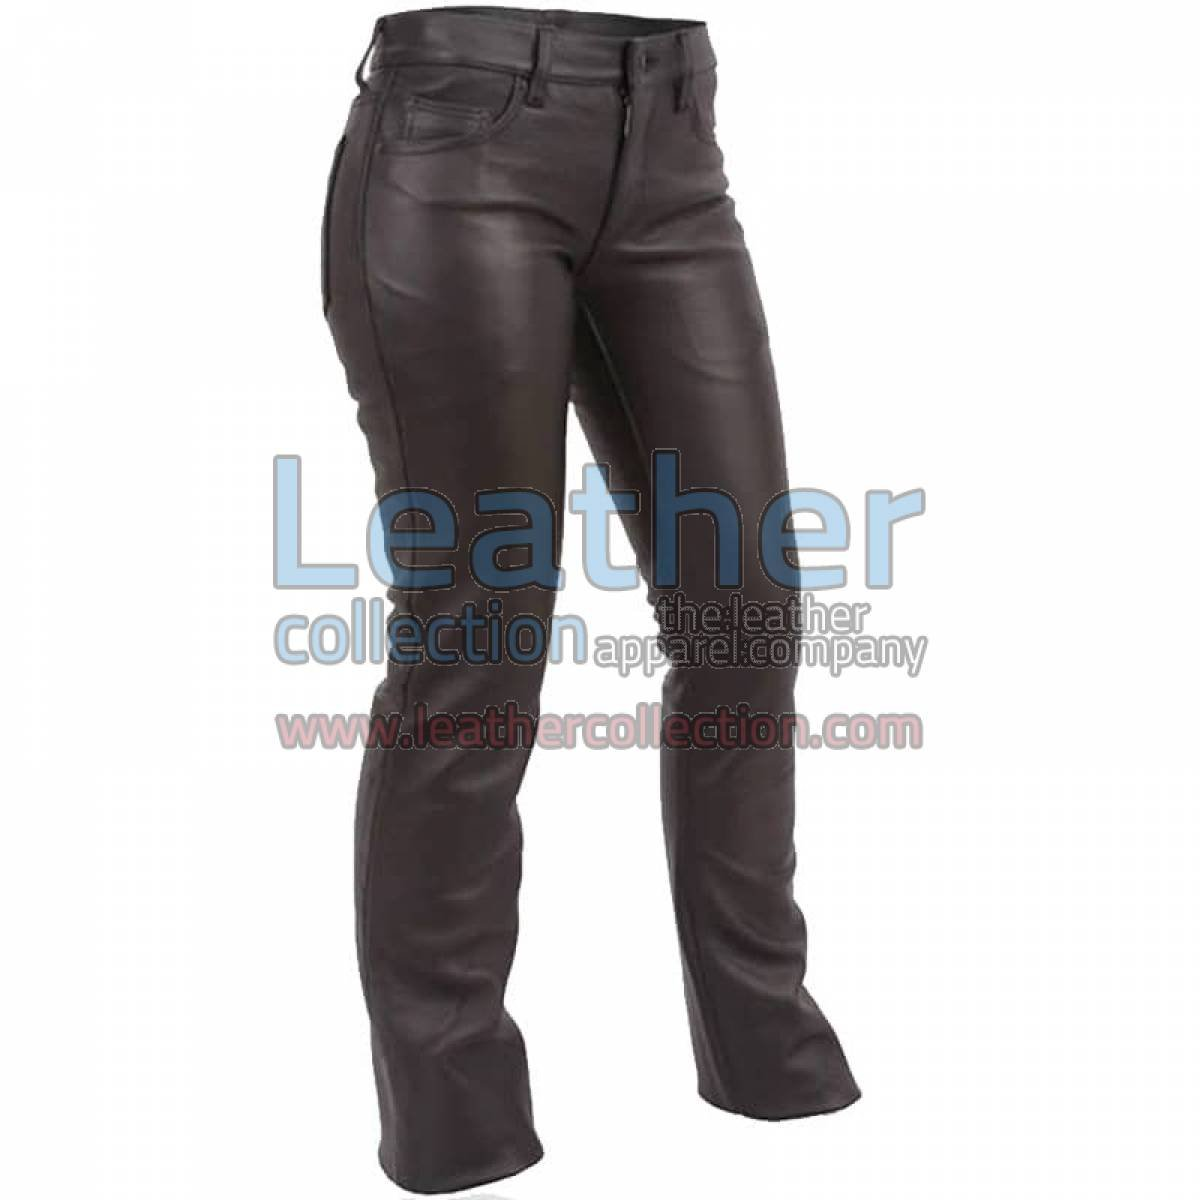 Jeans Style Low Rise Leather Pants